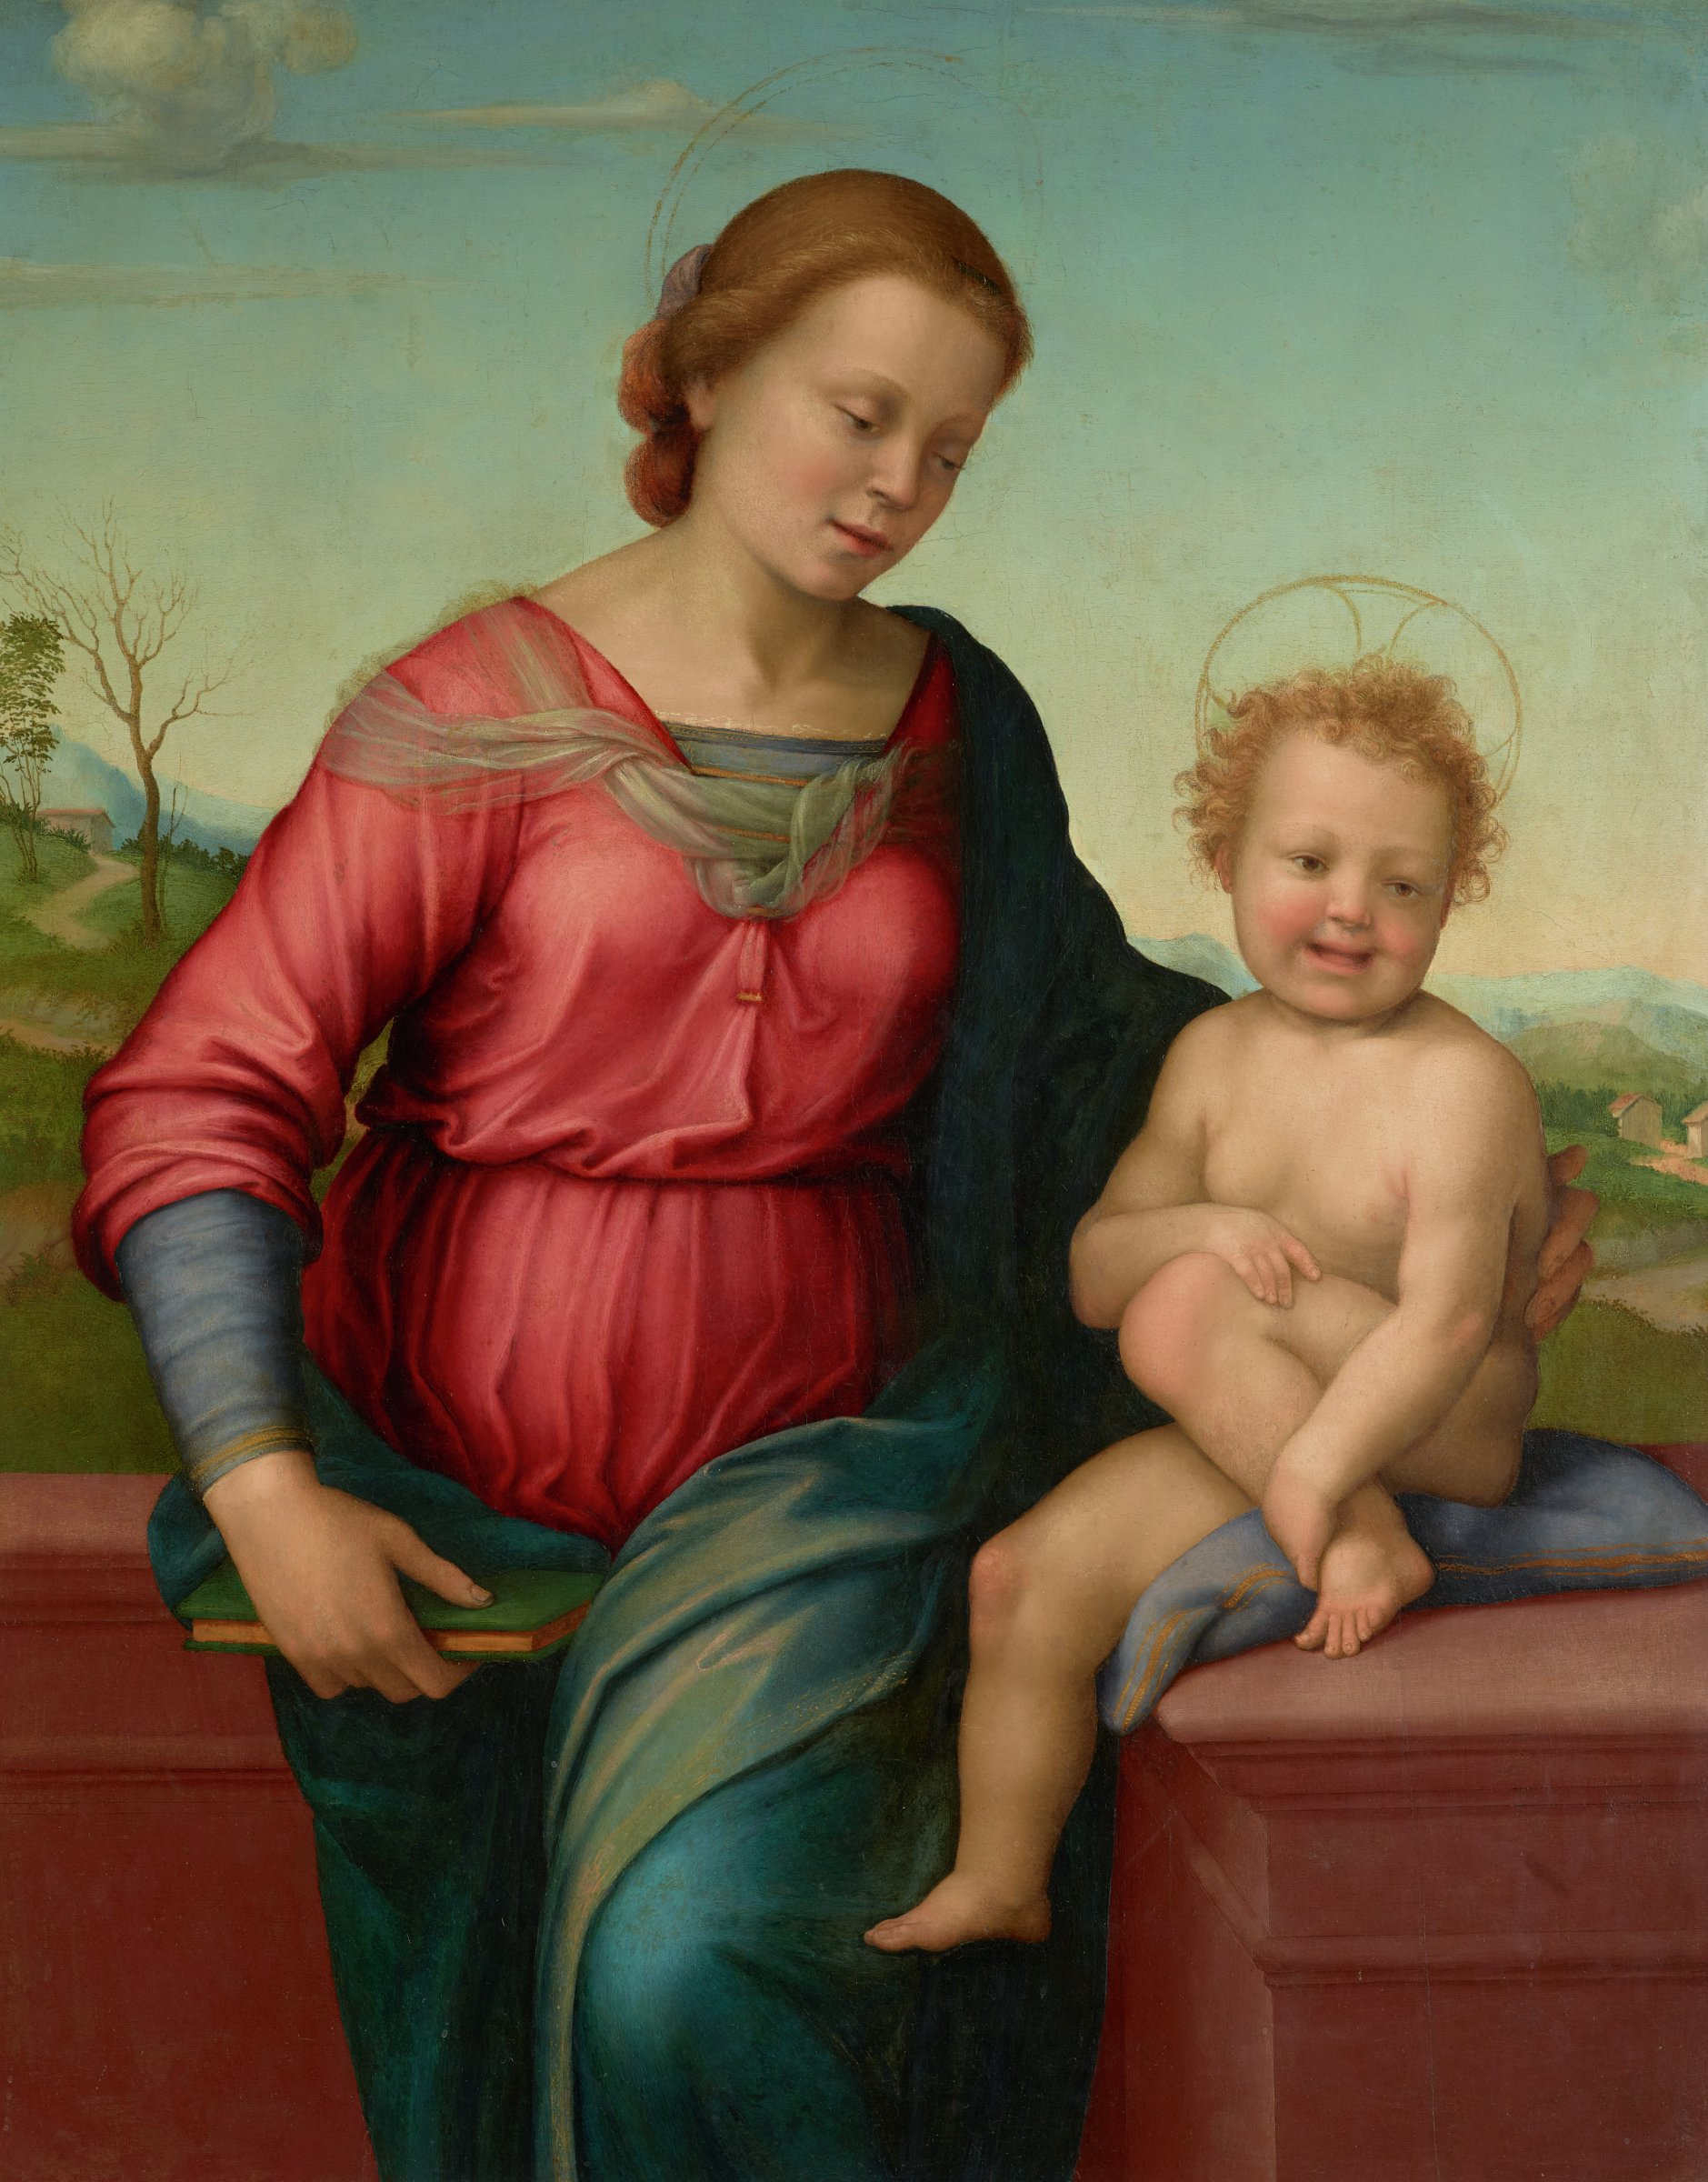 The Madonna stands in front of a low wall with hills and cottages behind her. She holds a book with one hand and with the other supports the back of the Christ Child who is seated on the wall. The Child smiles happily and looks out at the viewer.